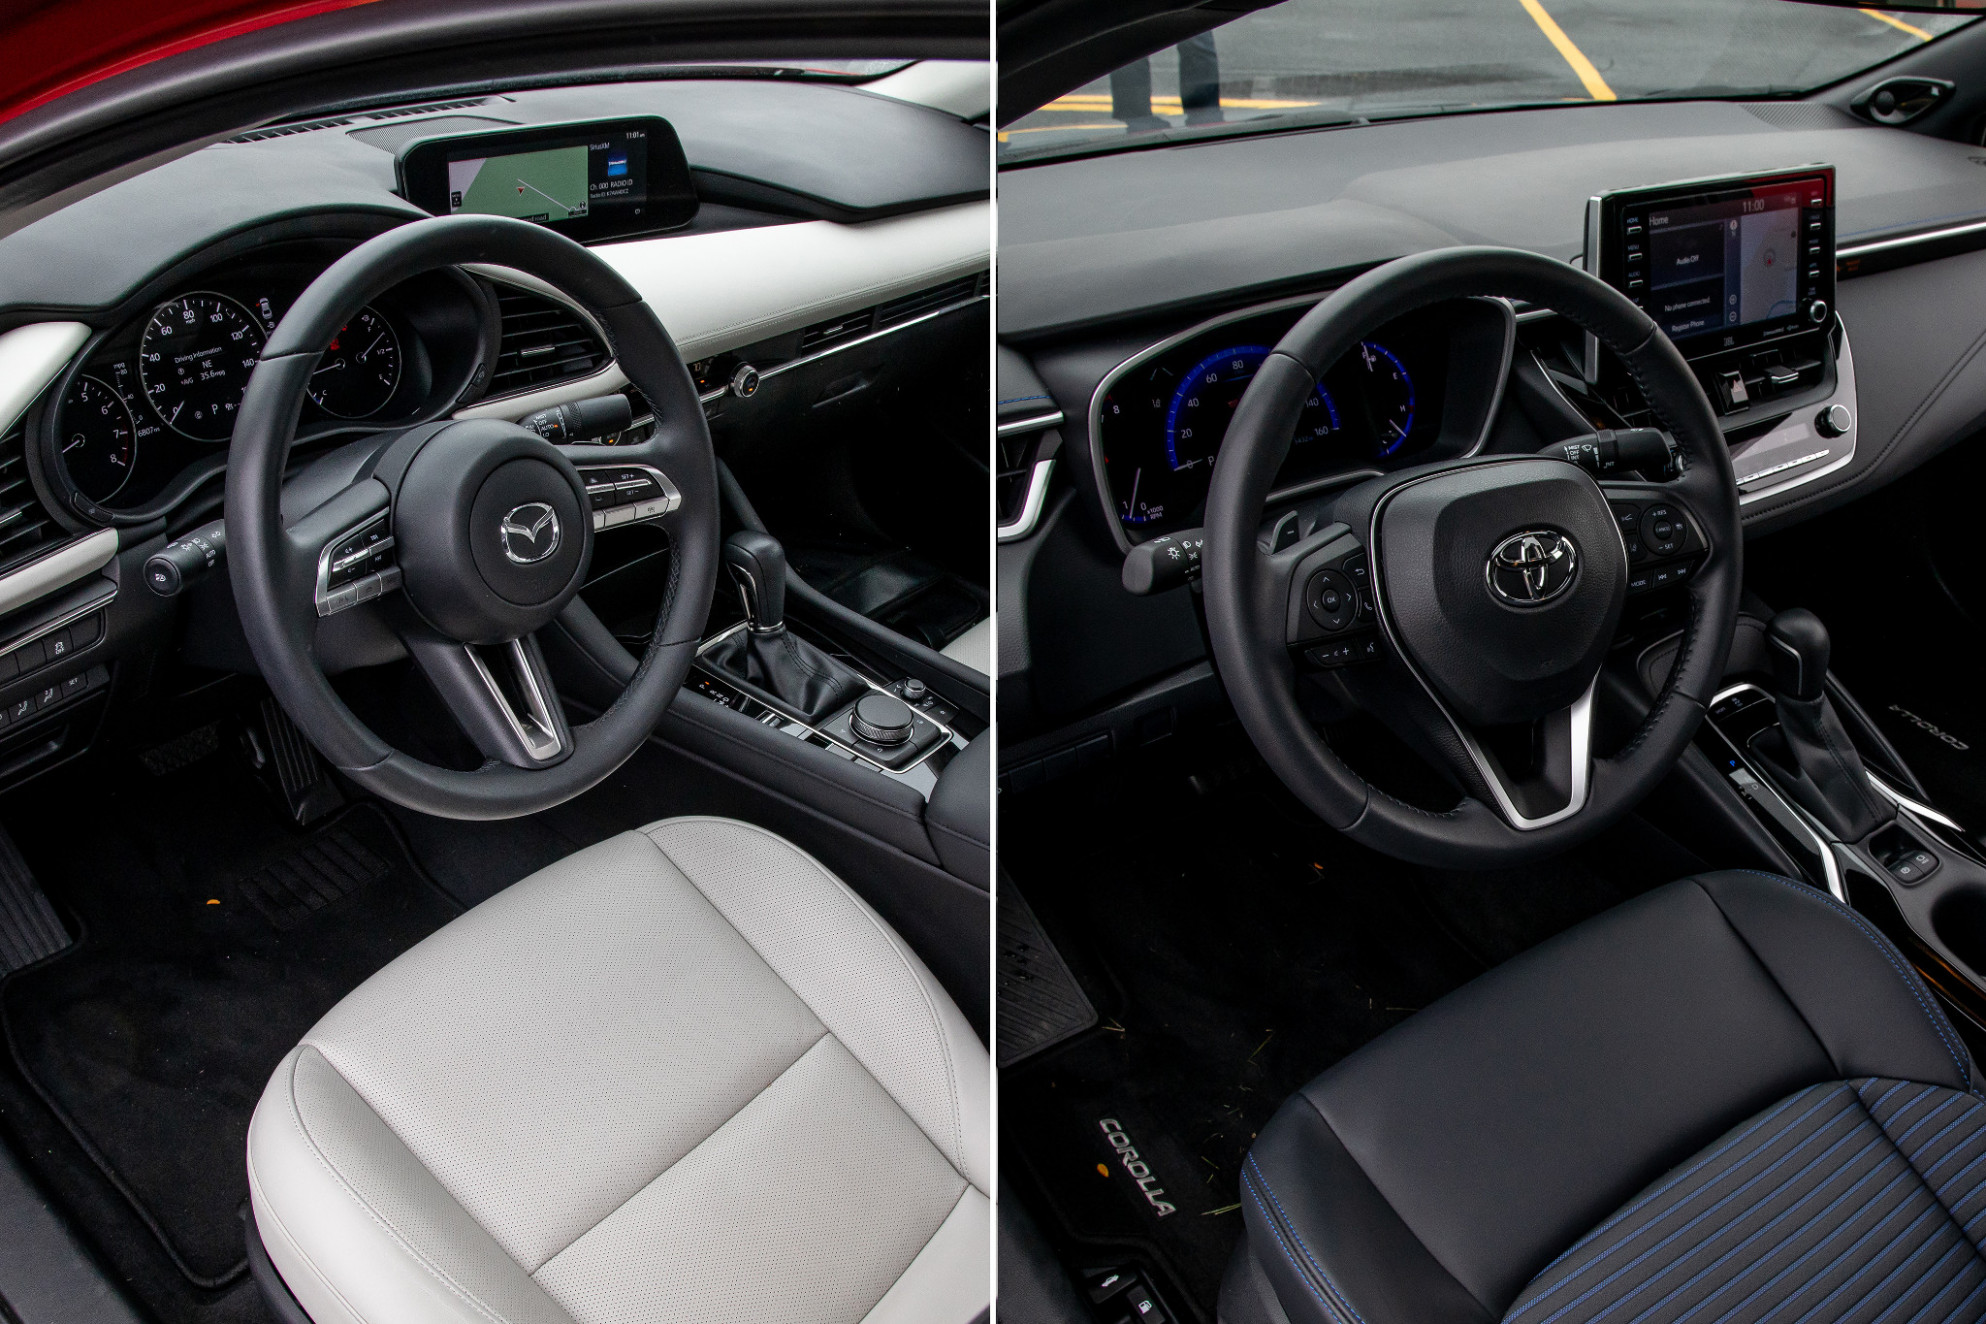 The Toyota Corolla XSE Is More Fun to Drive Than a Mazda8, and ...